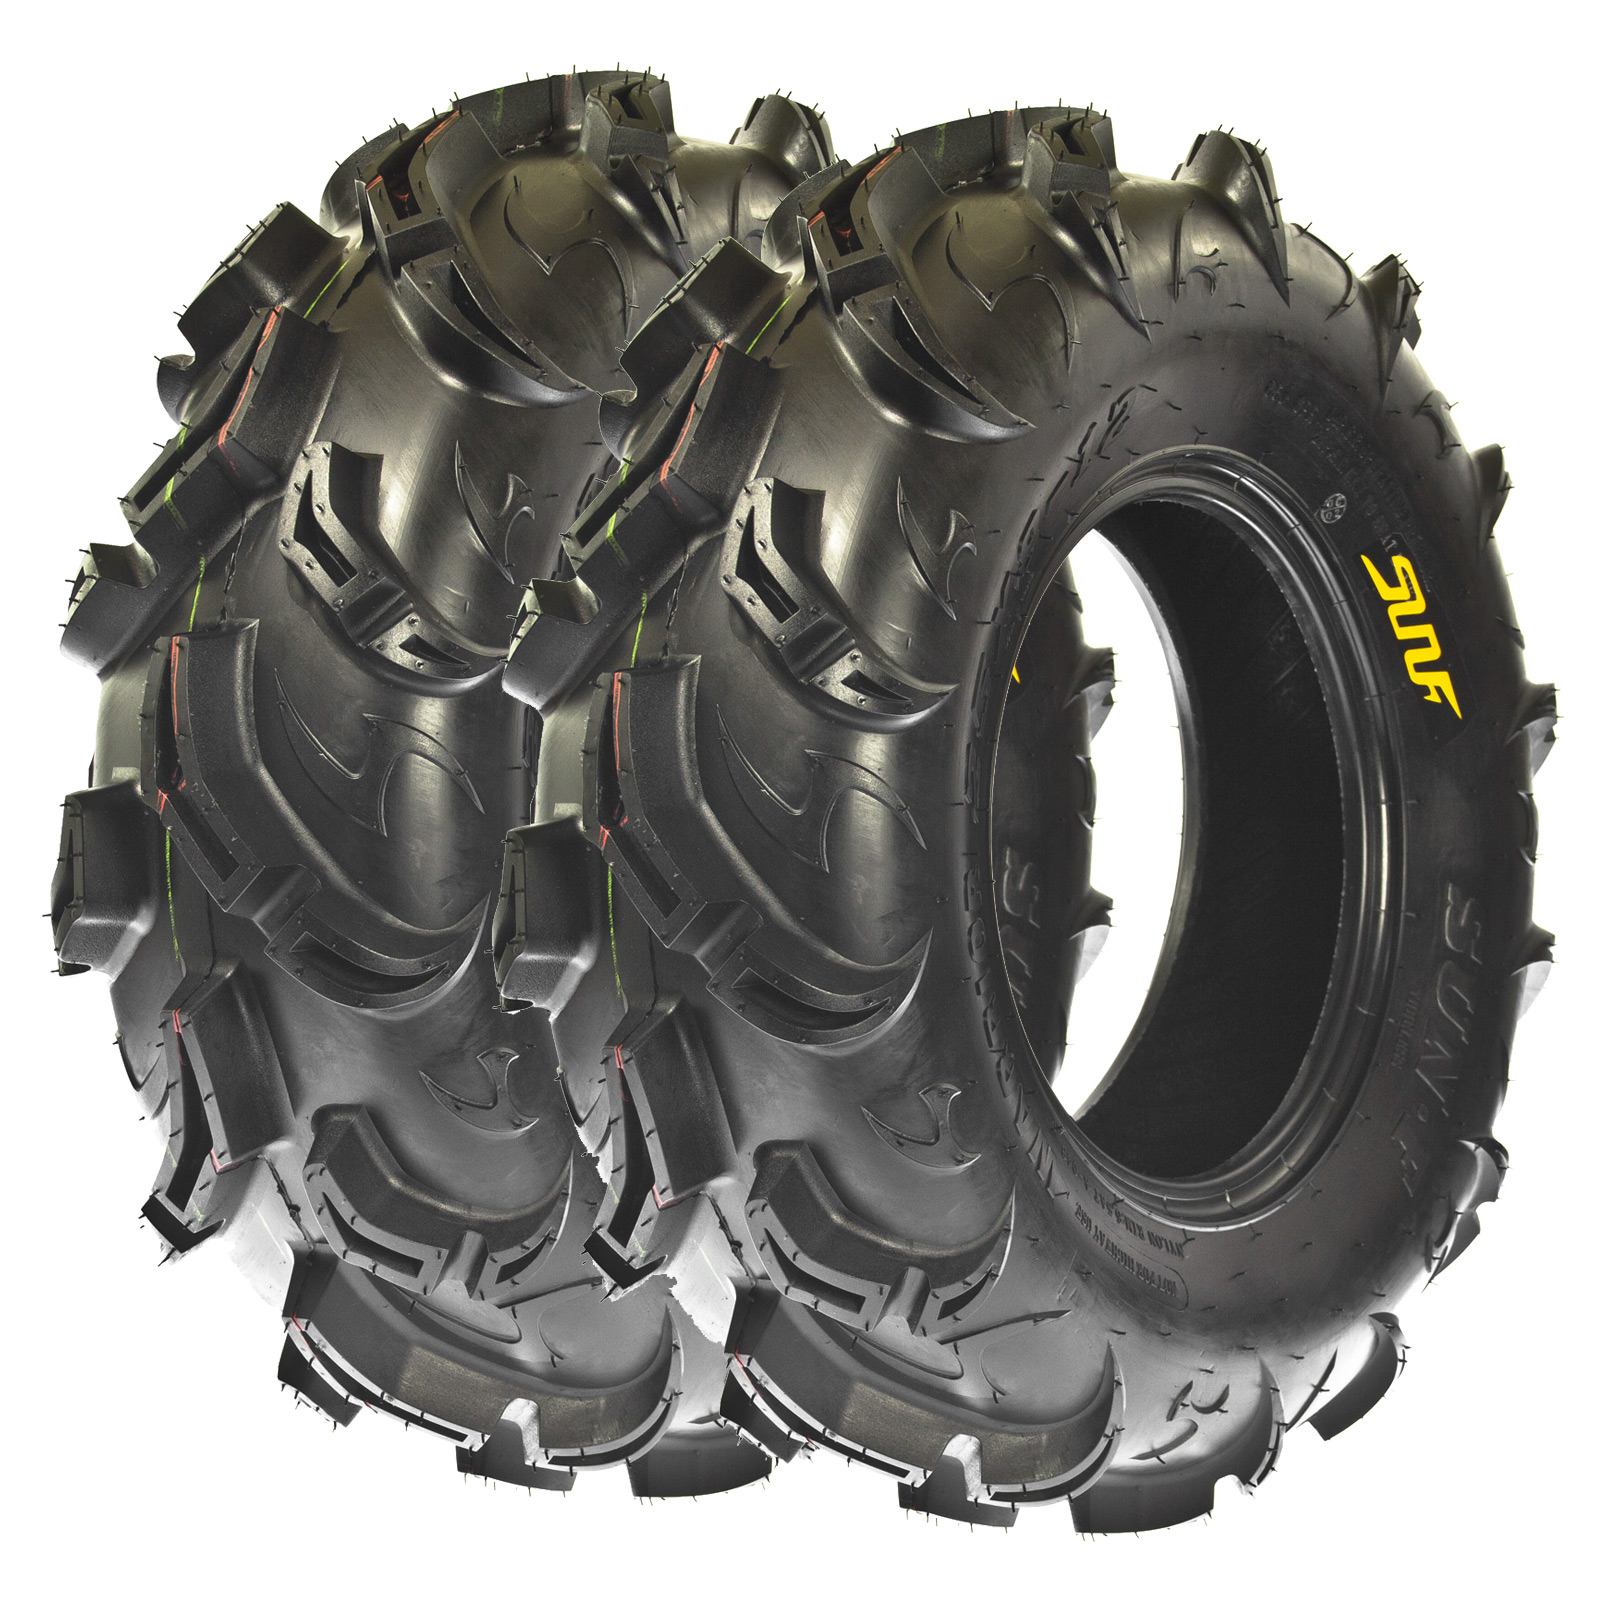 ITP ATV Tires  Proven Market Leader